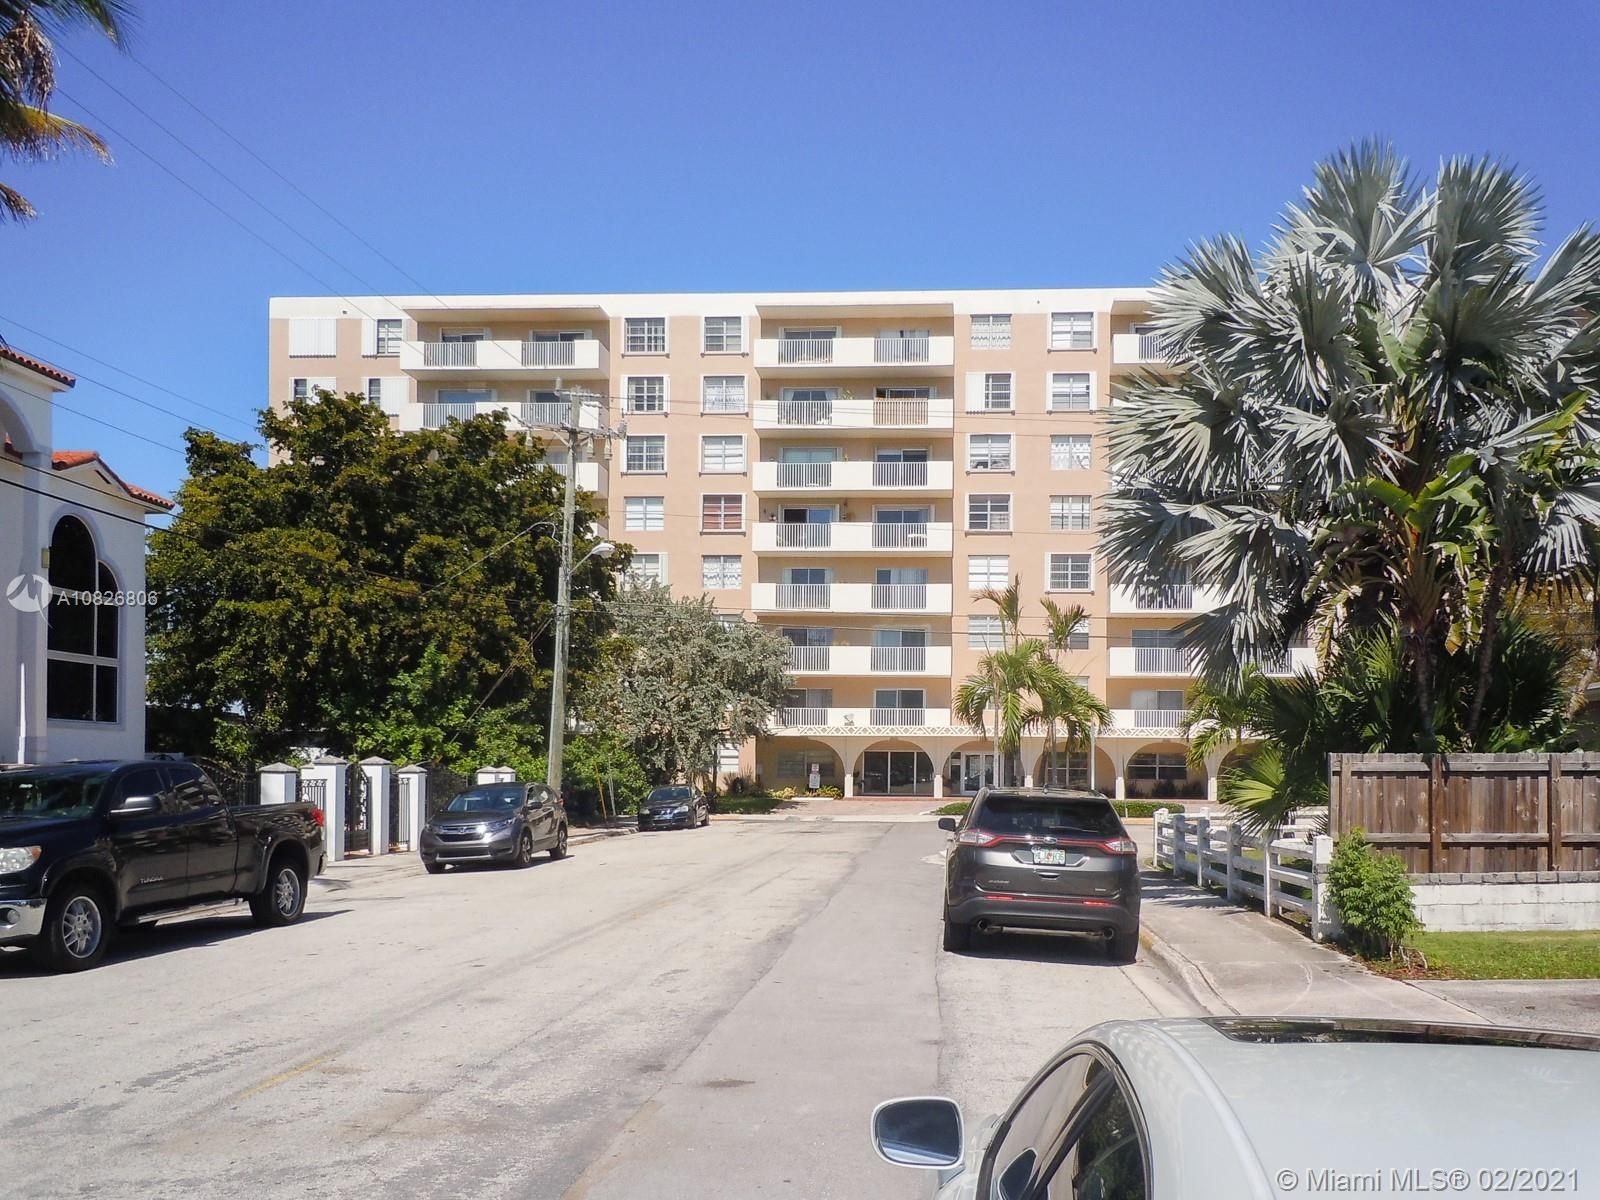 Island Place, 1455 N Treasure Dr Unit 7 D, North Bay Village, Florida 33141, image 50